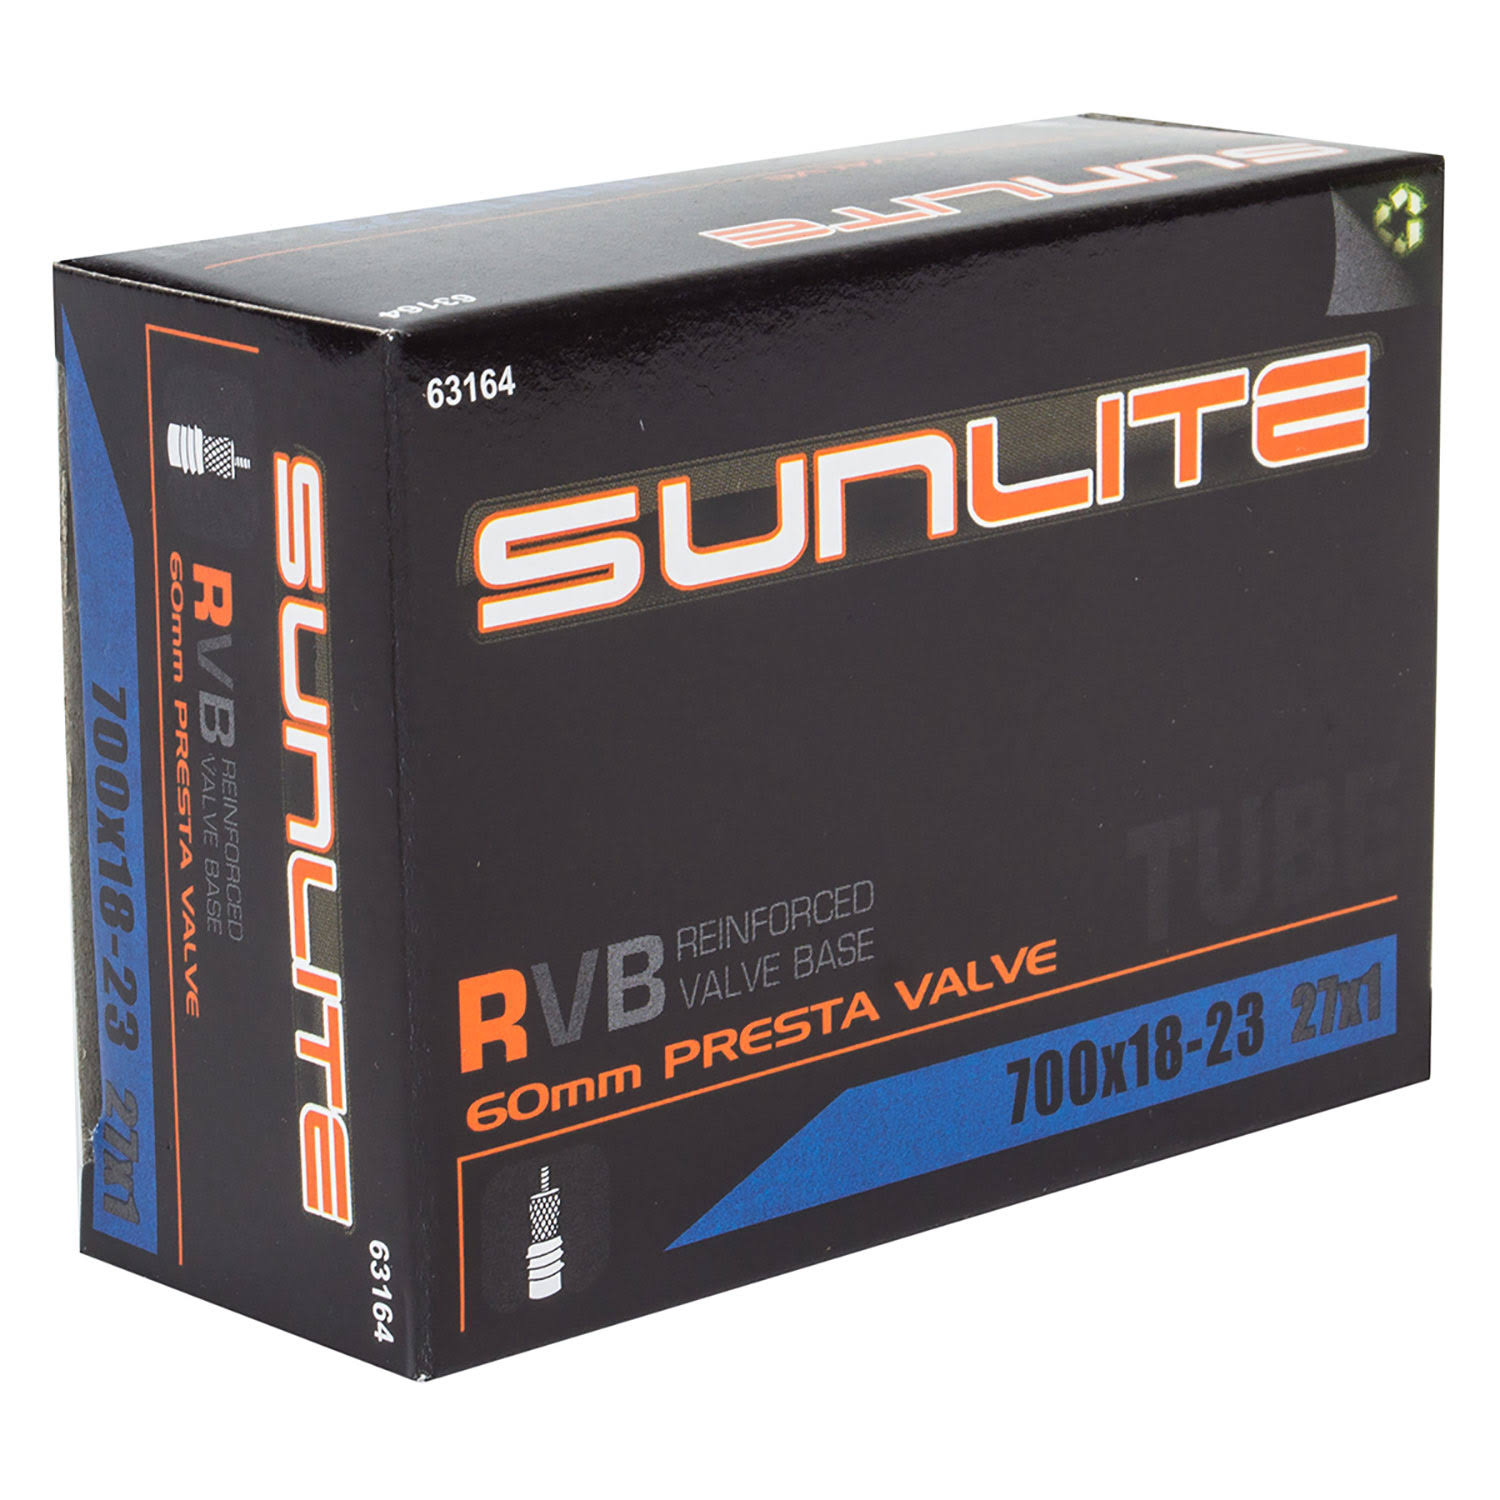 Sunlite Premium Bicycle Tube